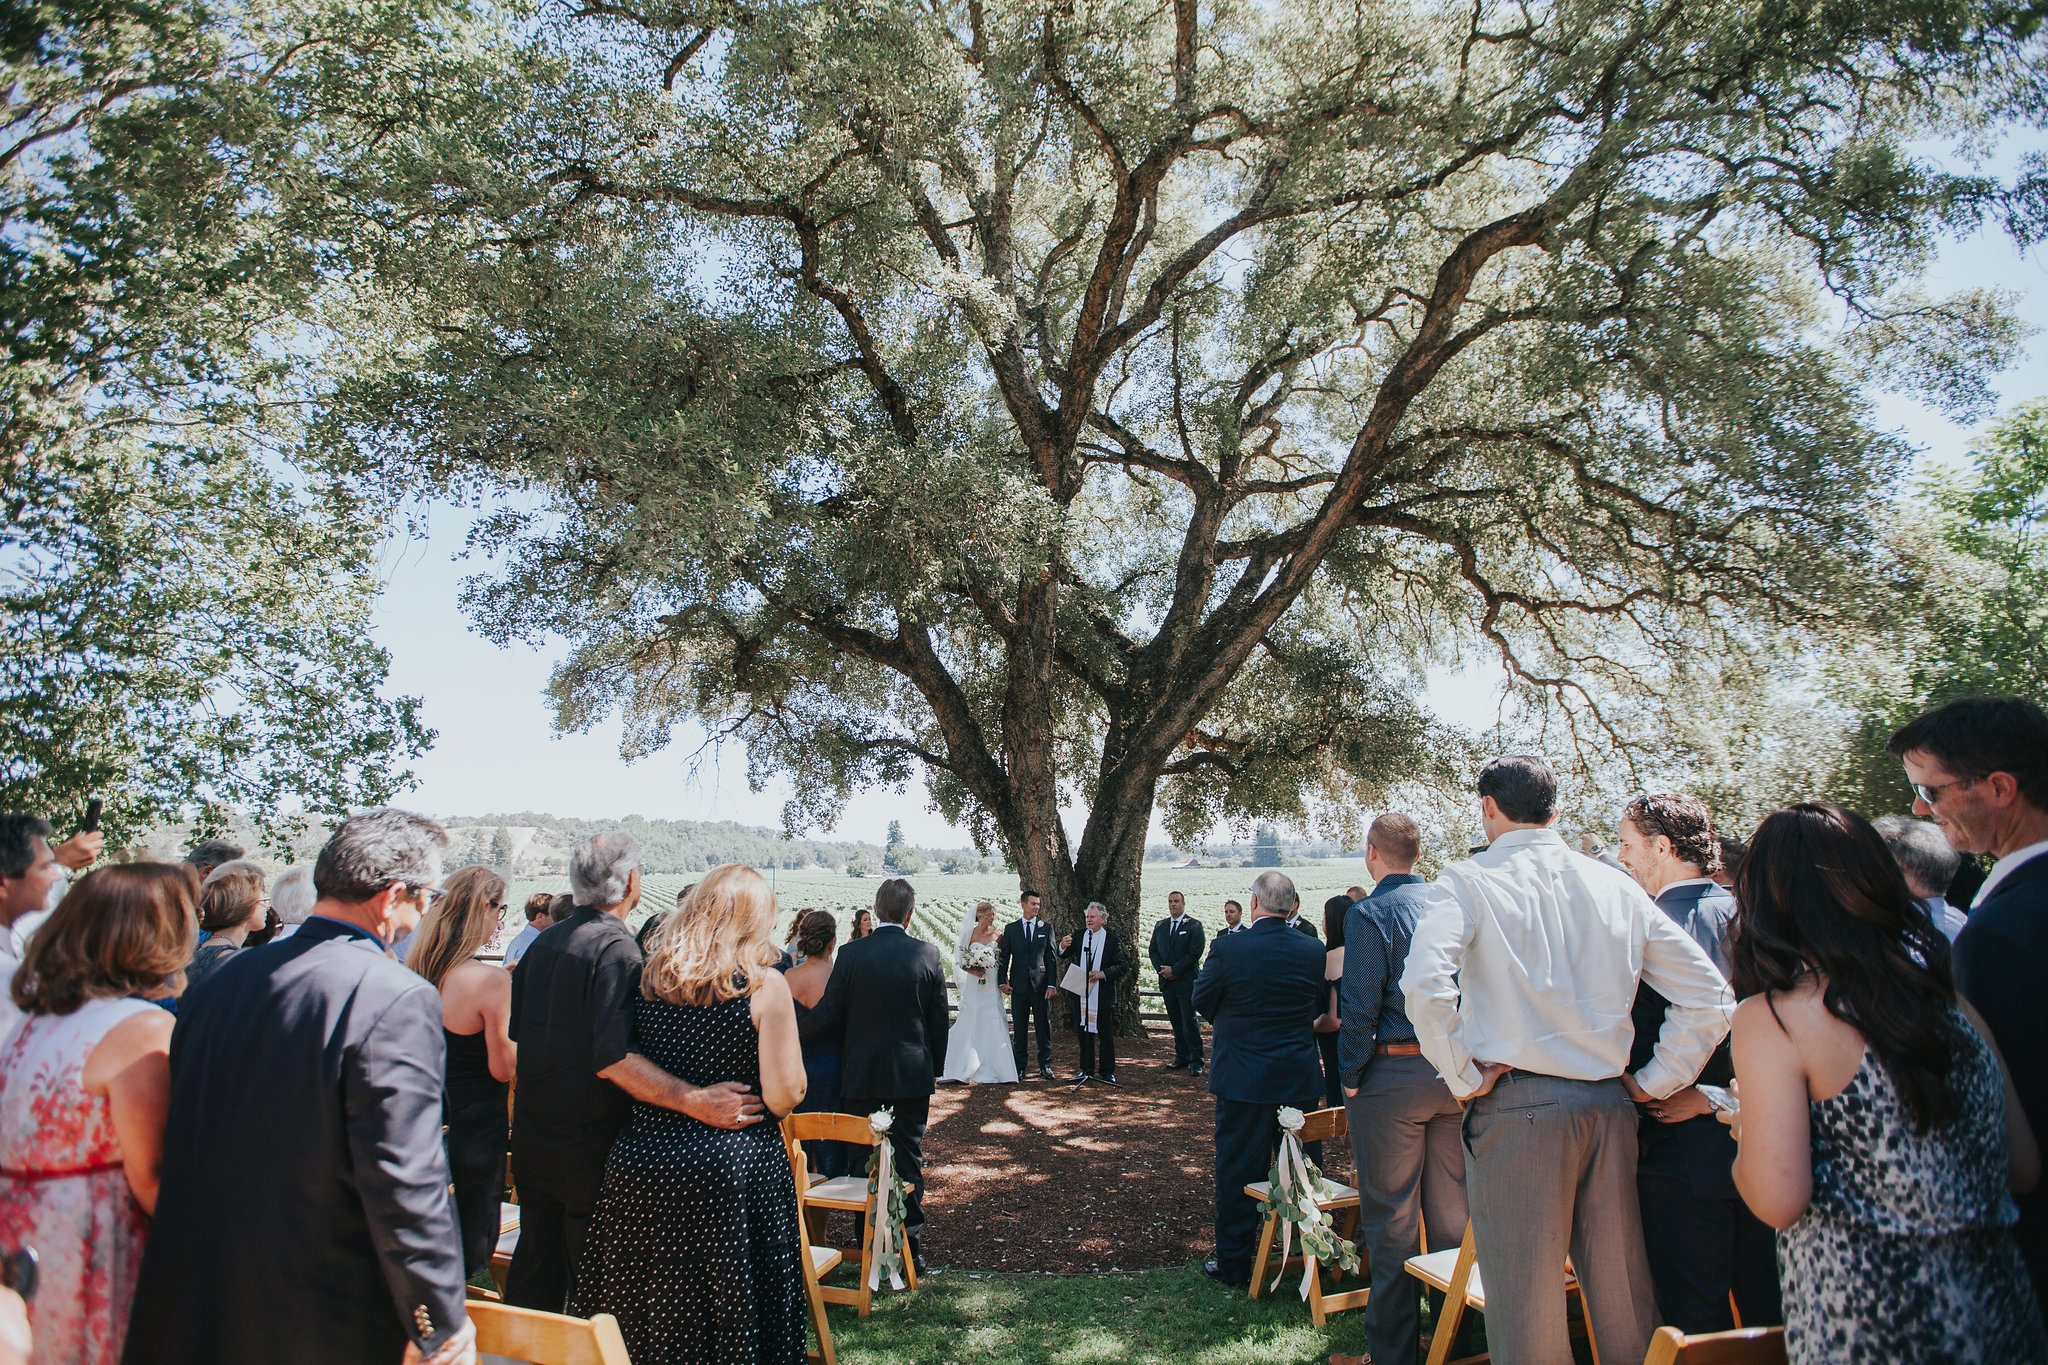 Rus-farm-wedding-healdsburg-heald-wedding-consulting-hwc-ceremony-oak-tree.jpg